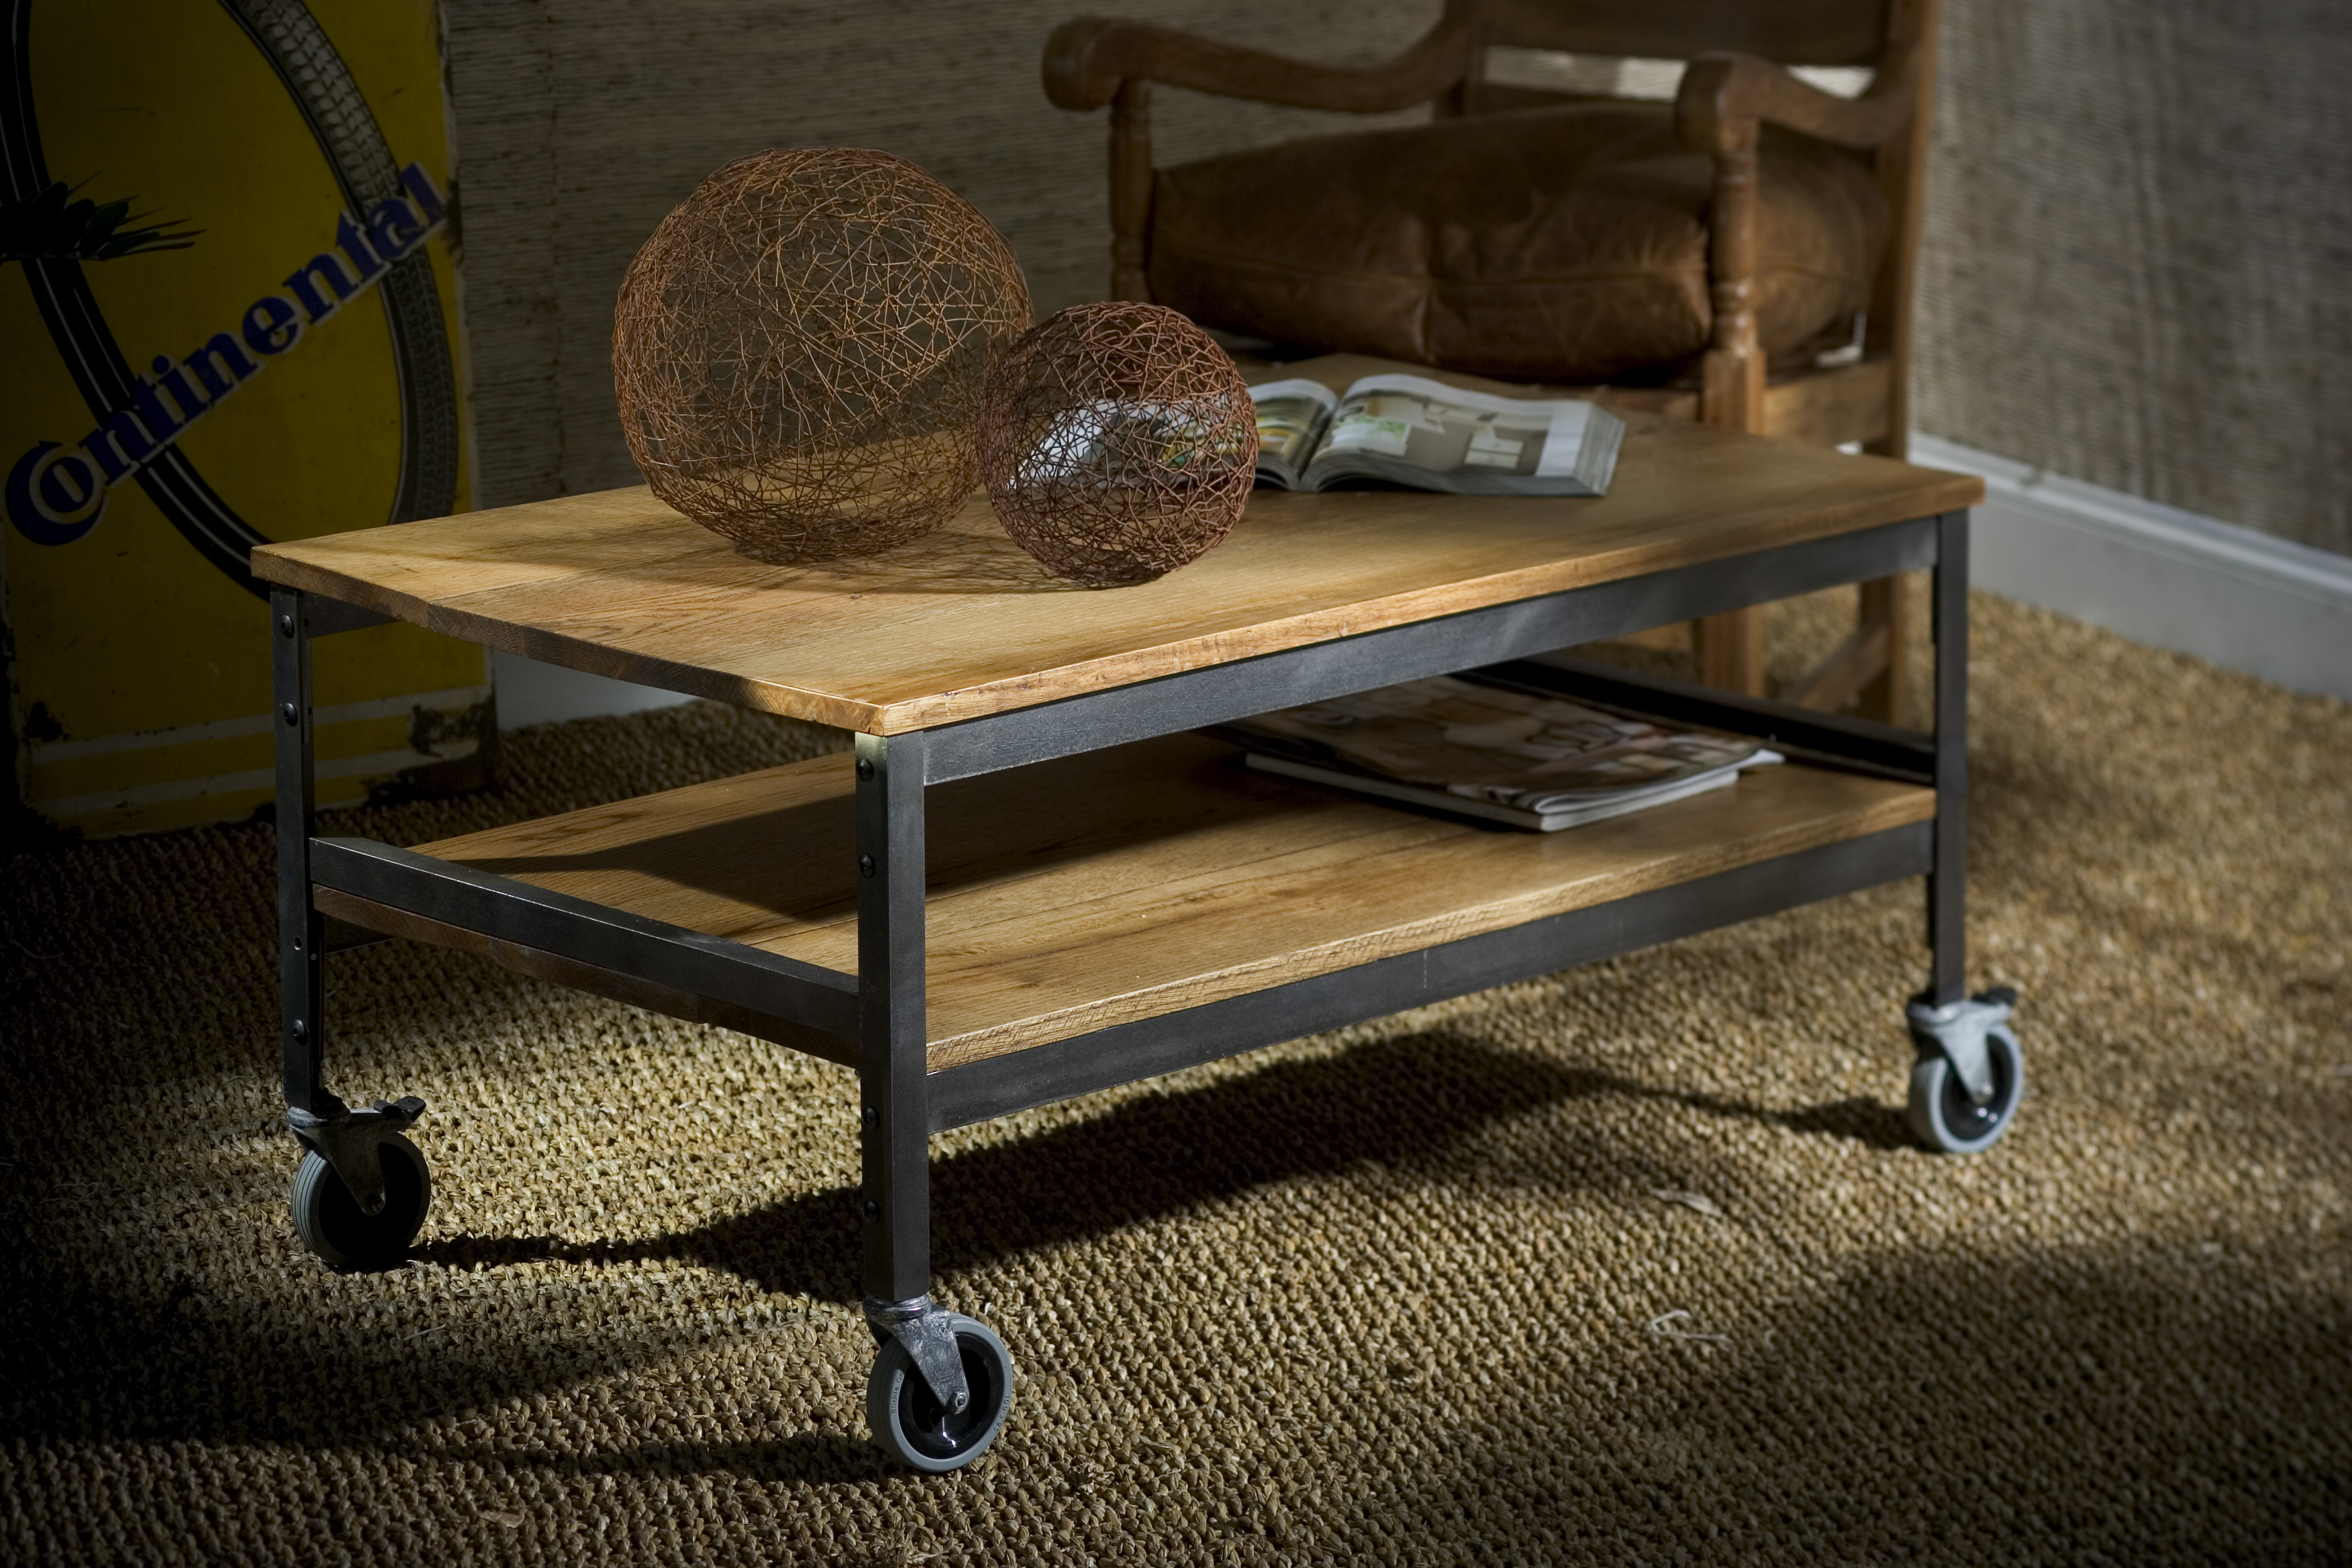 The Rustic Chic Bricklayer s Coffee Table